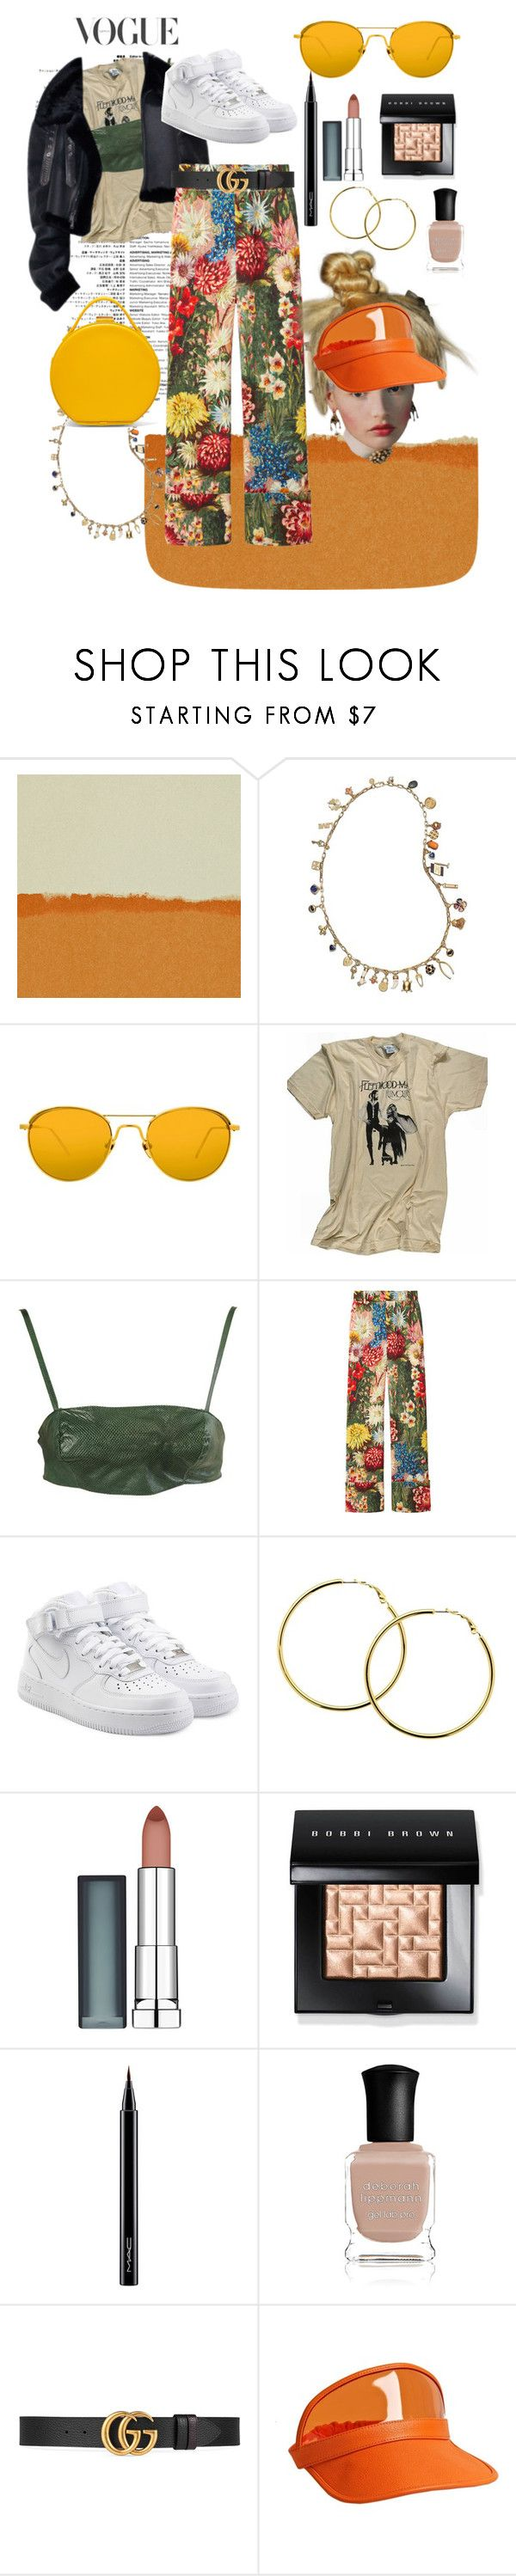 """Vintage vs Street Staples"" by diamondjennell ❤ liked on Polyvore featuring HARLEQUIN, Tory Burch, Linda Farrow, Retrò, Gucci, NIKE, Melissa Odabash, Maybelline, Bobbi Brown Cosmetics and MAC Cosmetics"